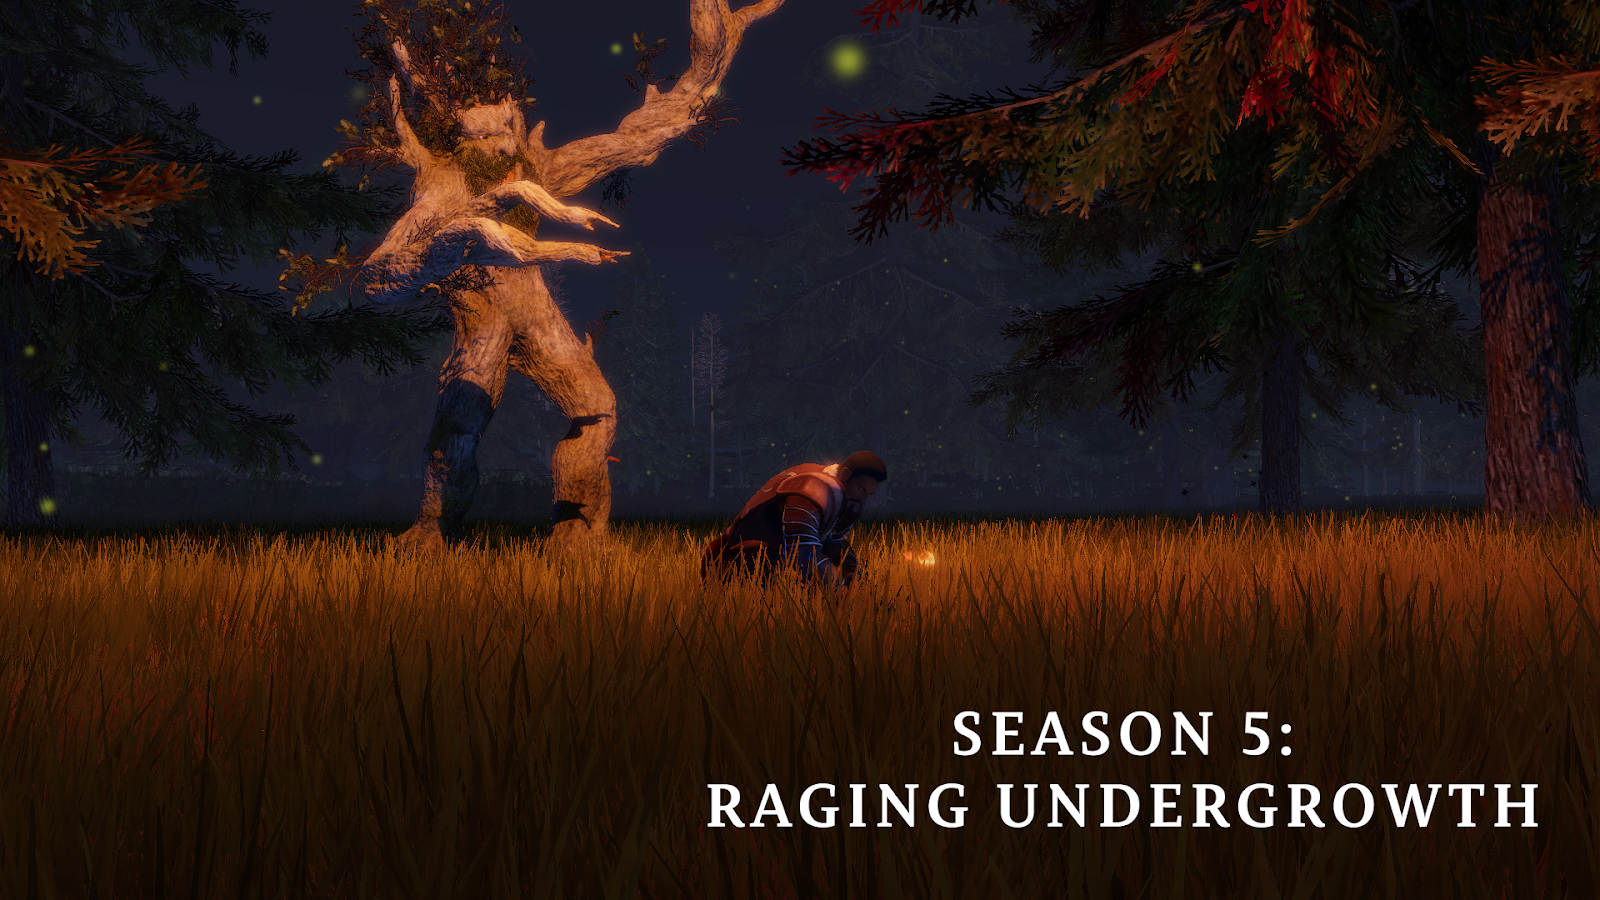 What's New in Season 5: Raging Undergrowth